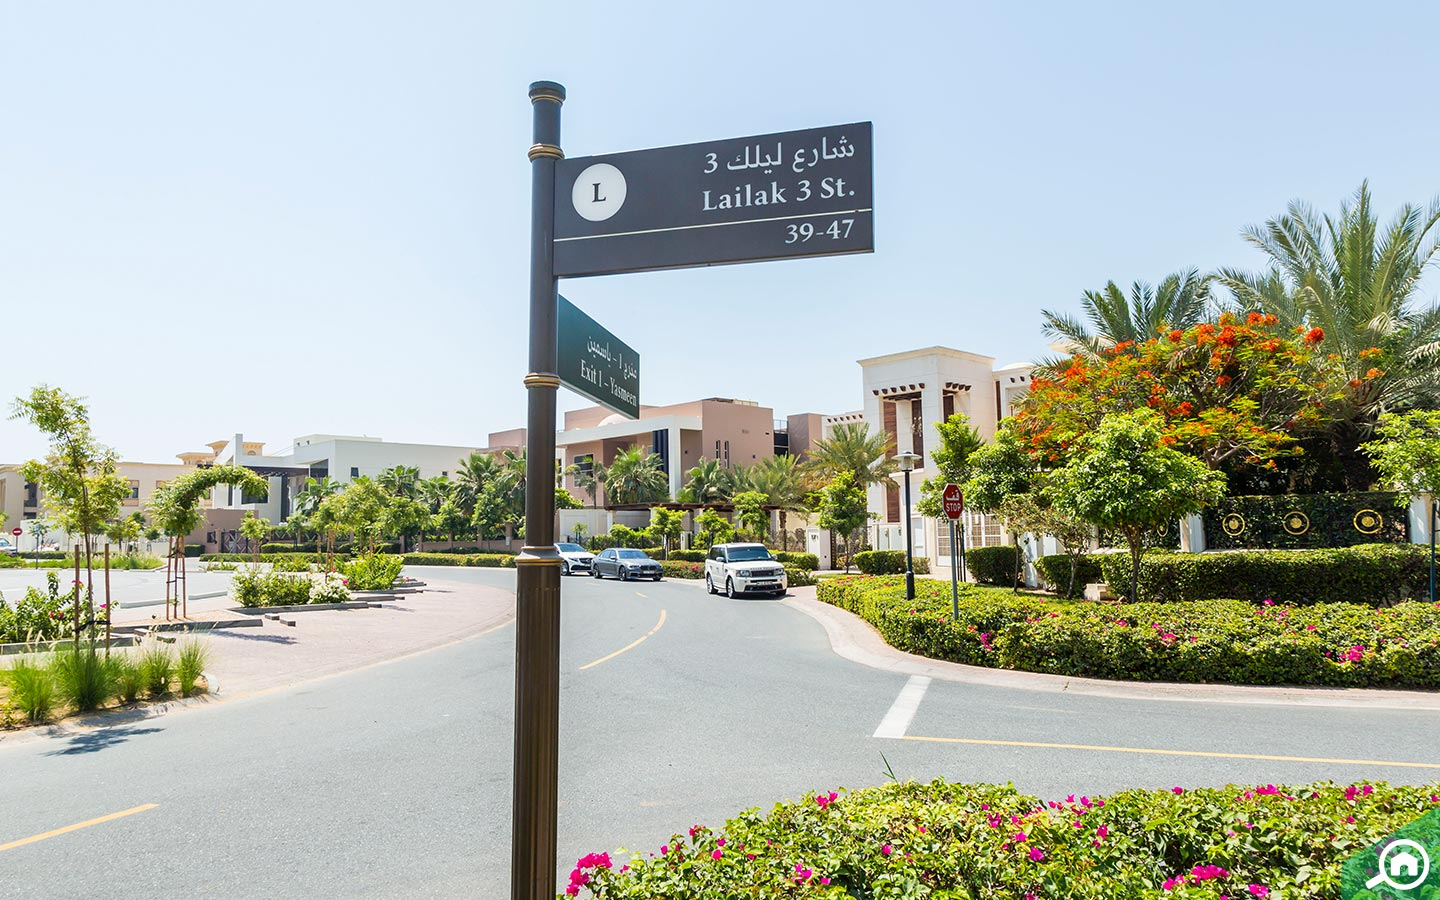 A sign post in Emirates Hills